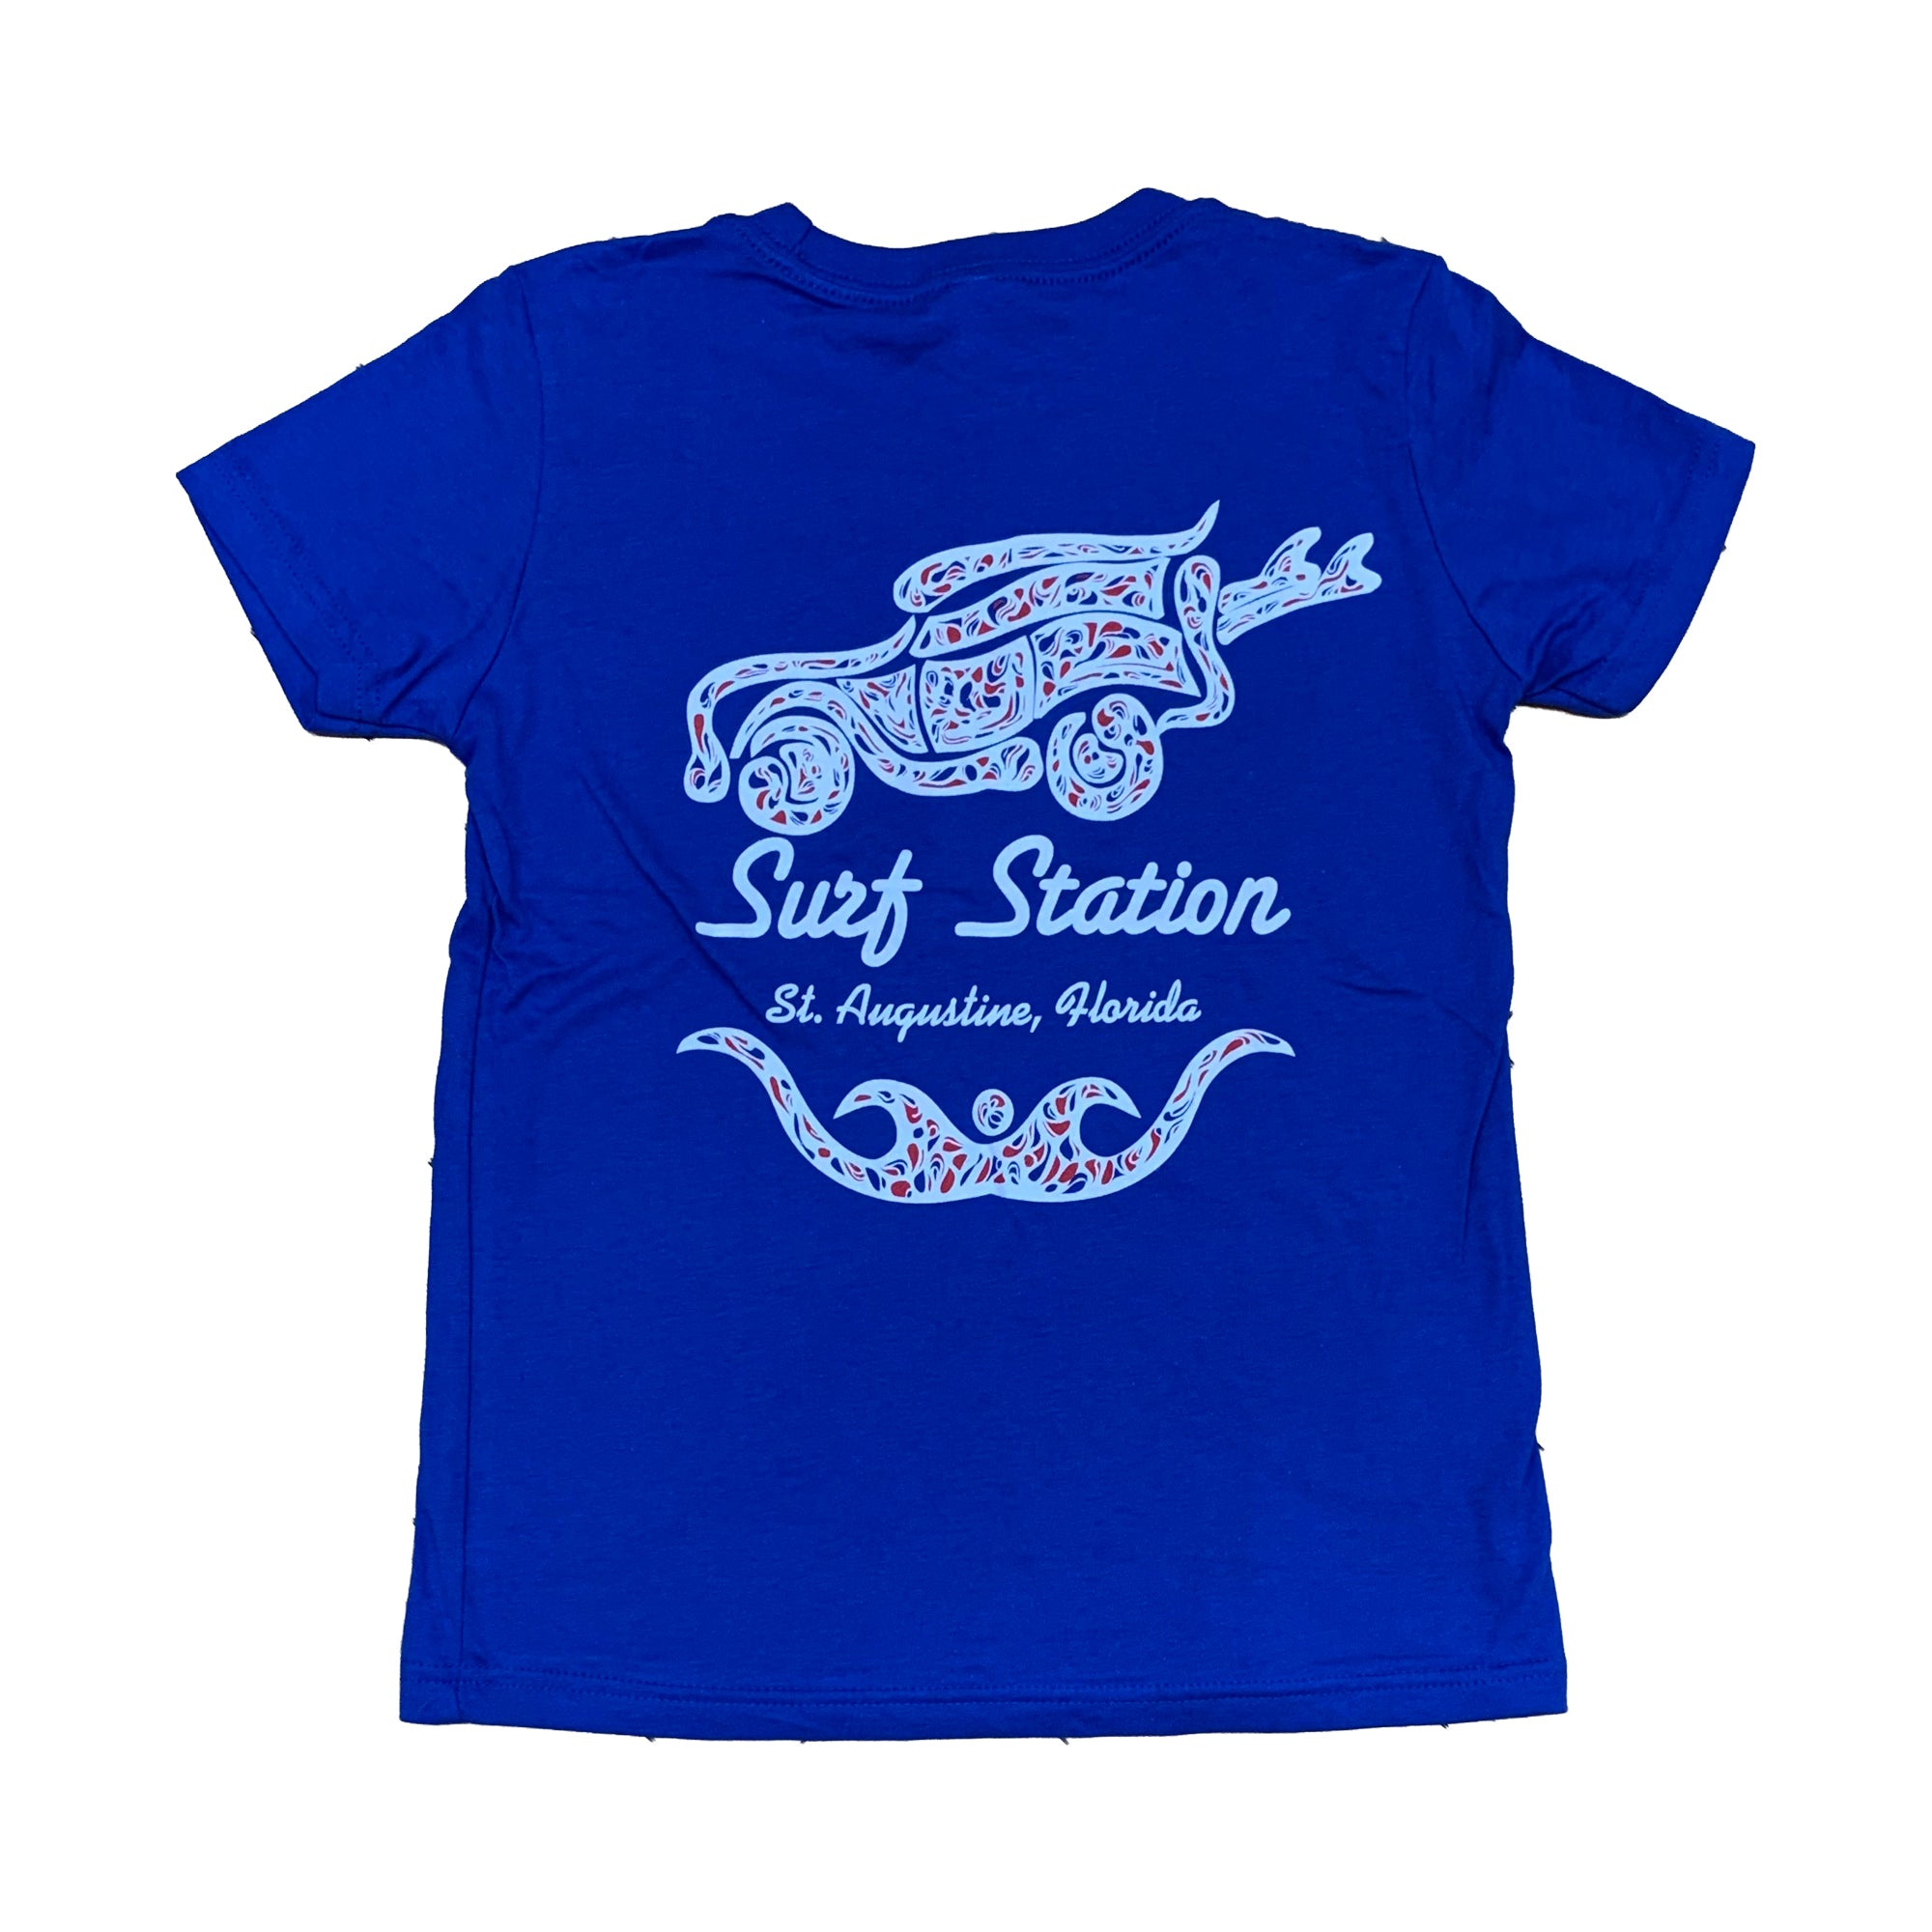 Surf Station Paisley Youth S/S T-Shirt